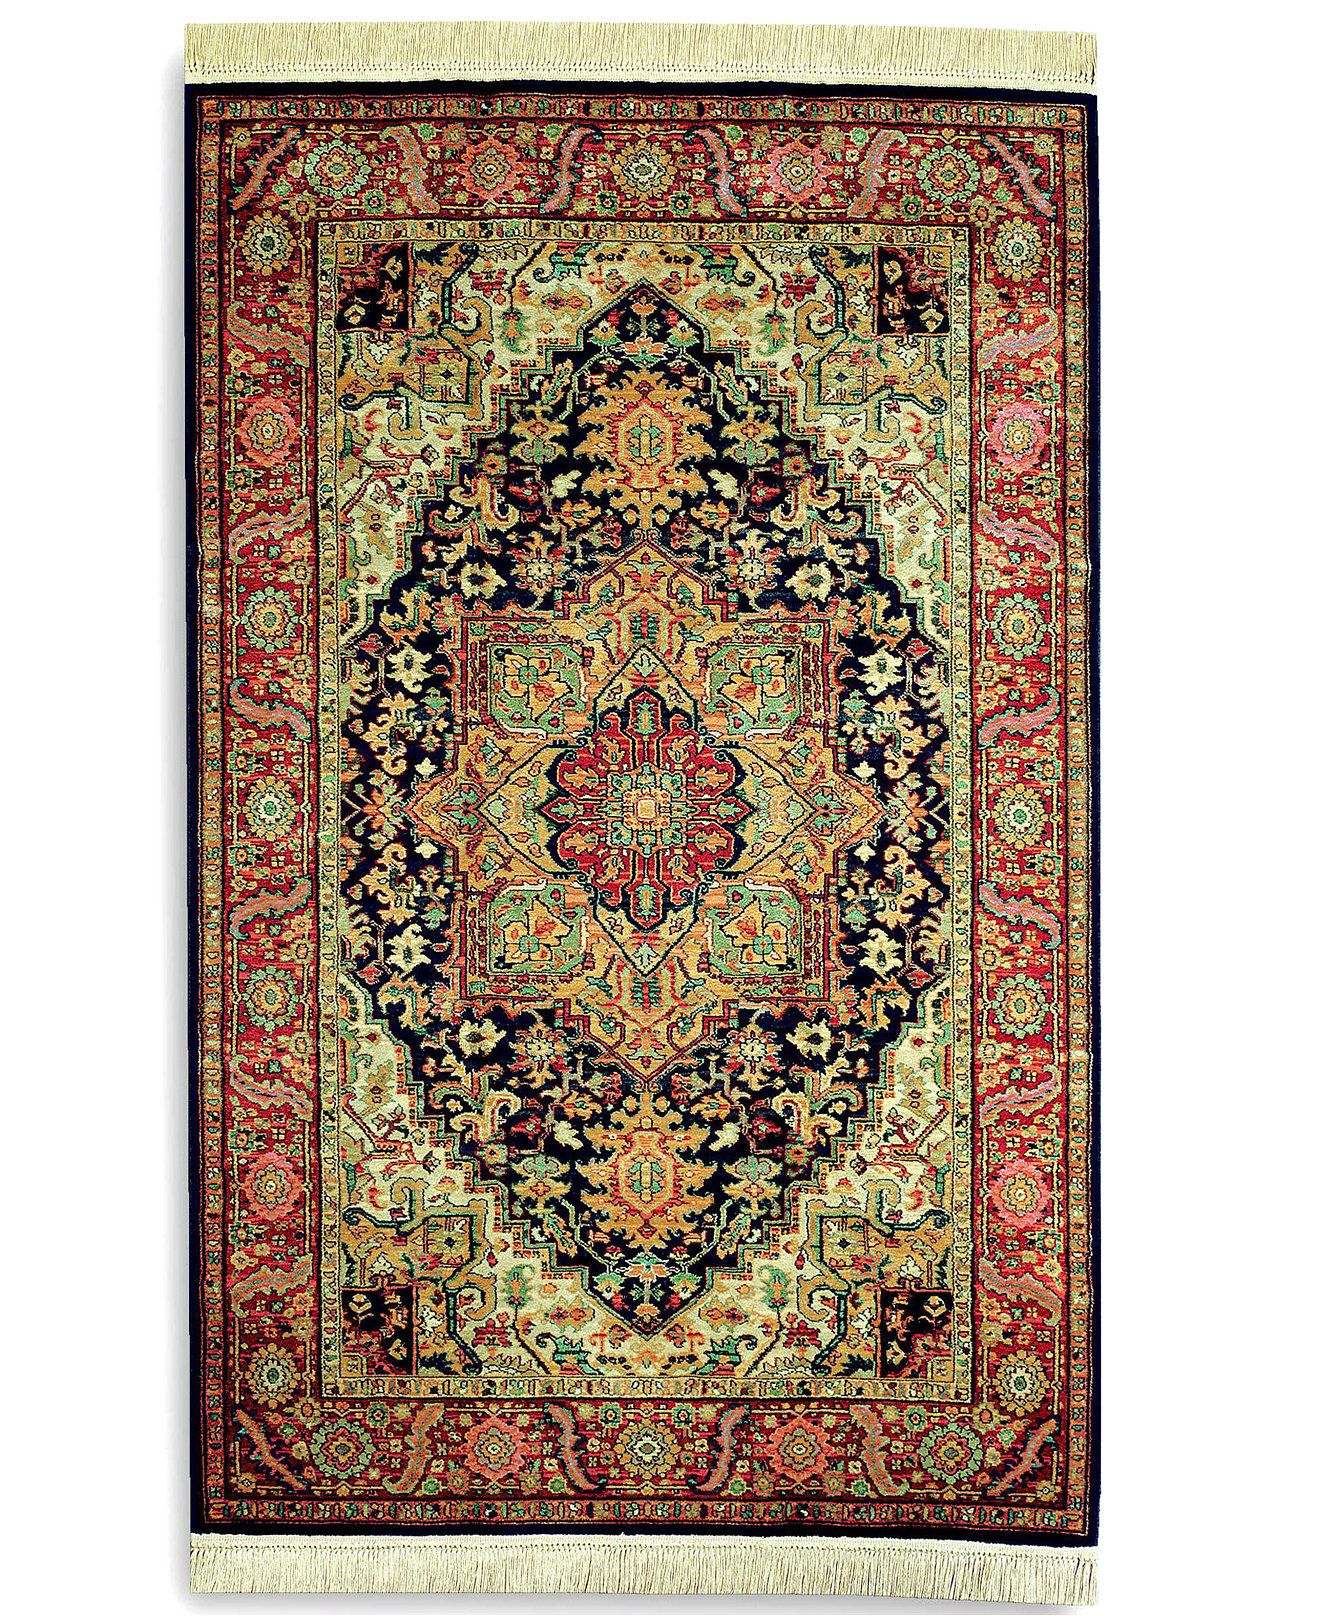 Rug Collection Original Karastan Rugs On Carpet Rugs Area Rugs